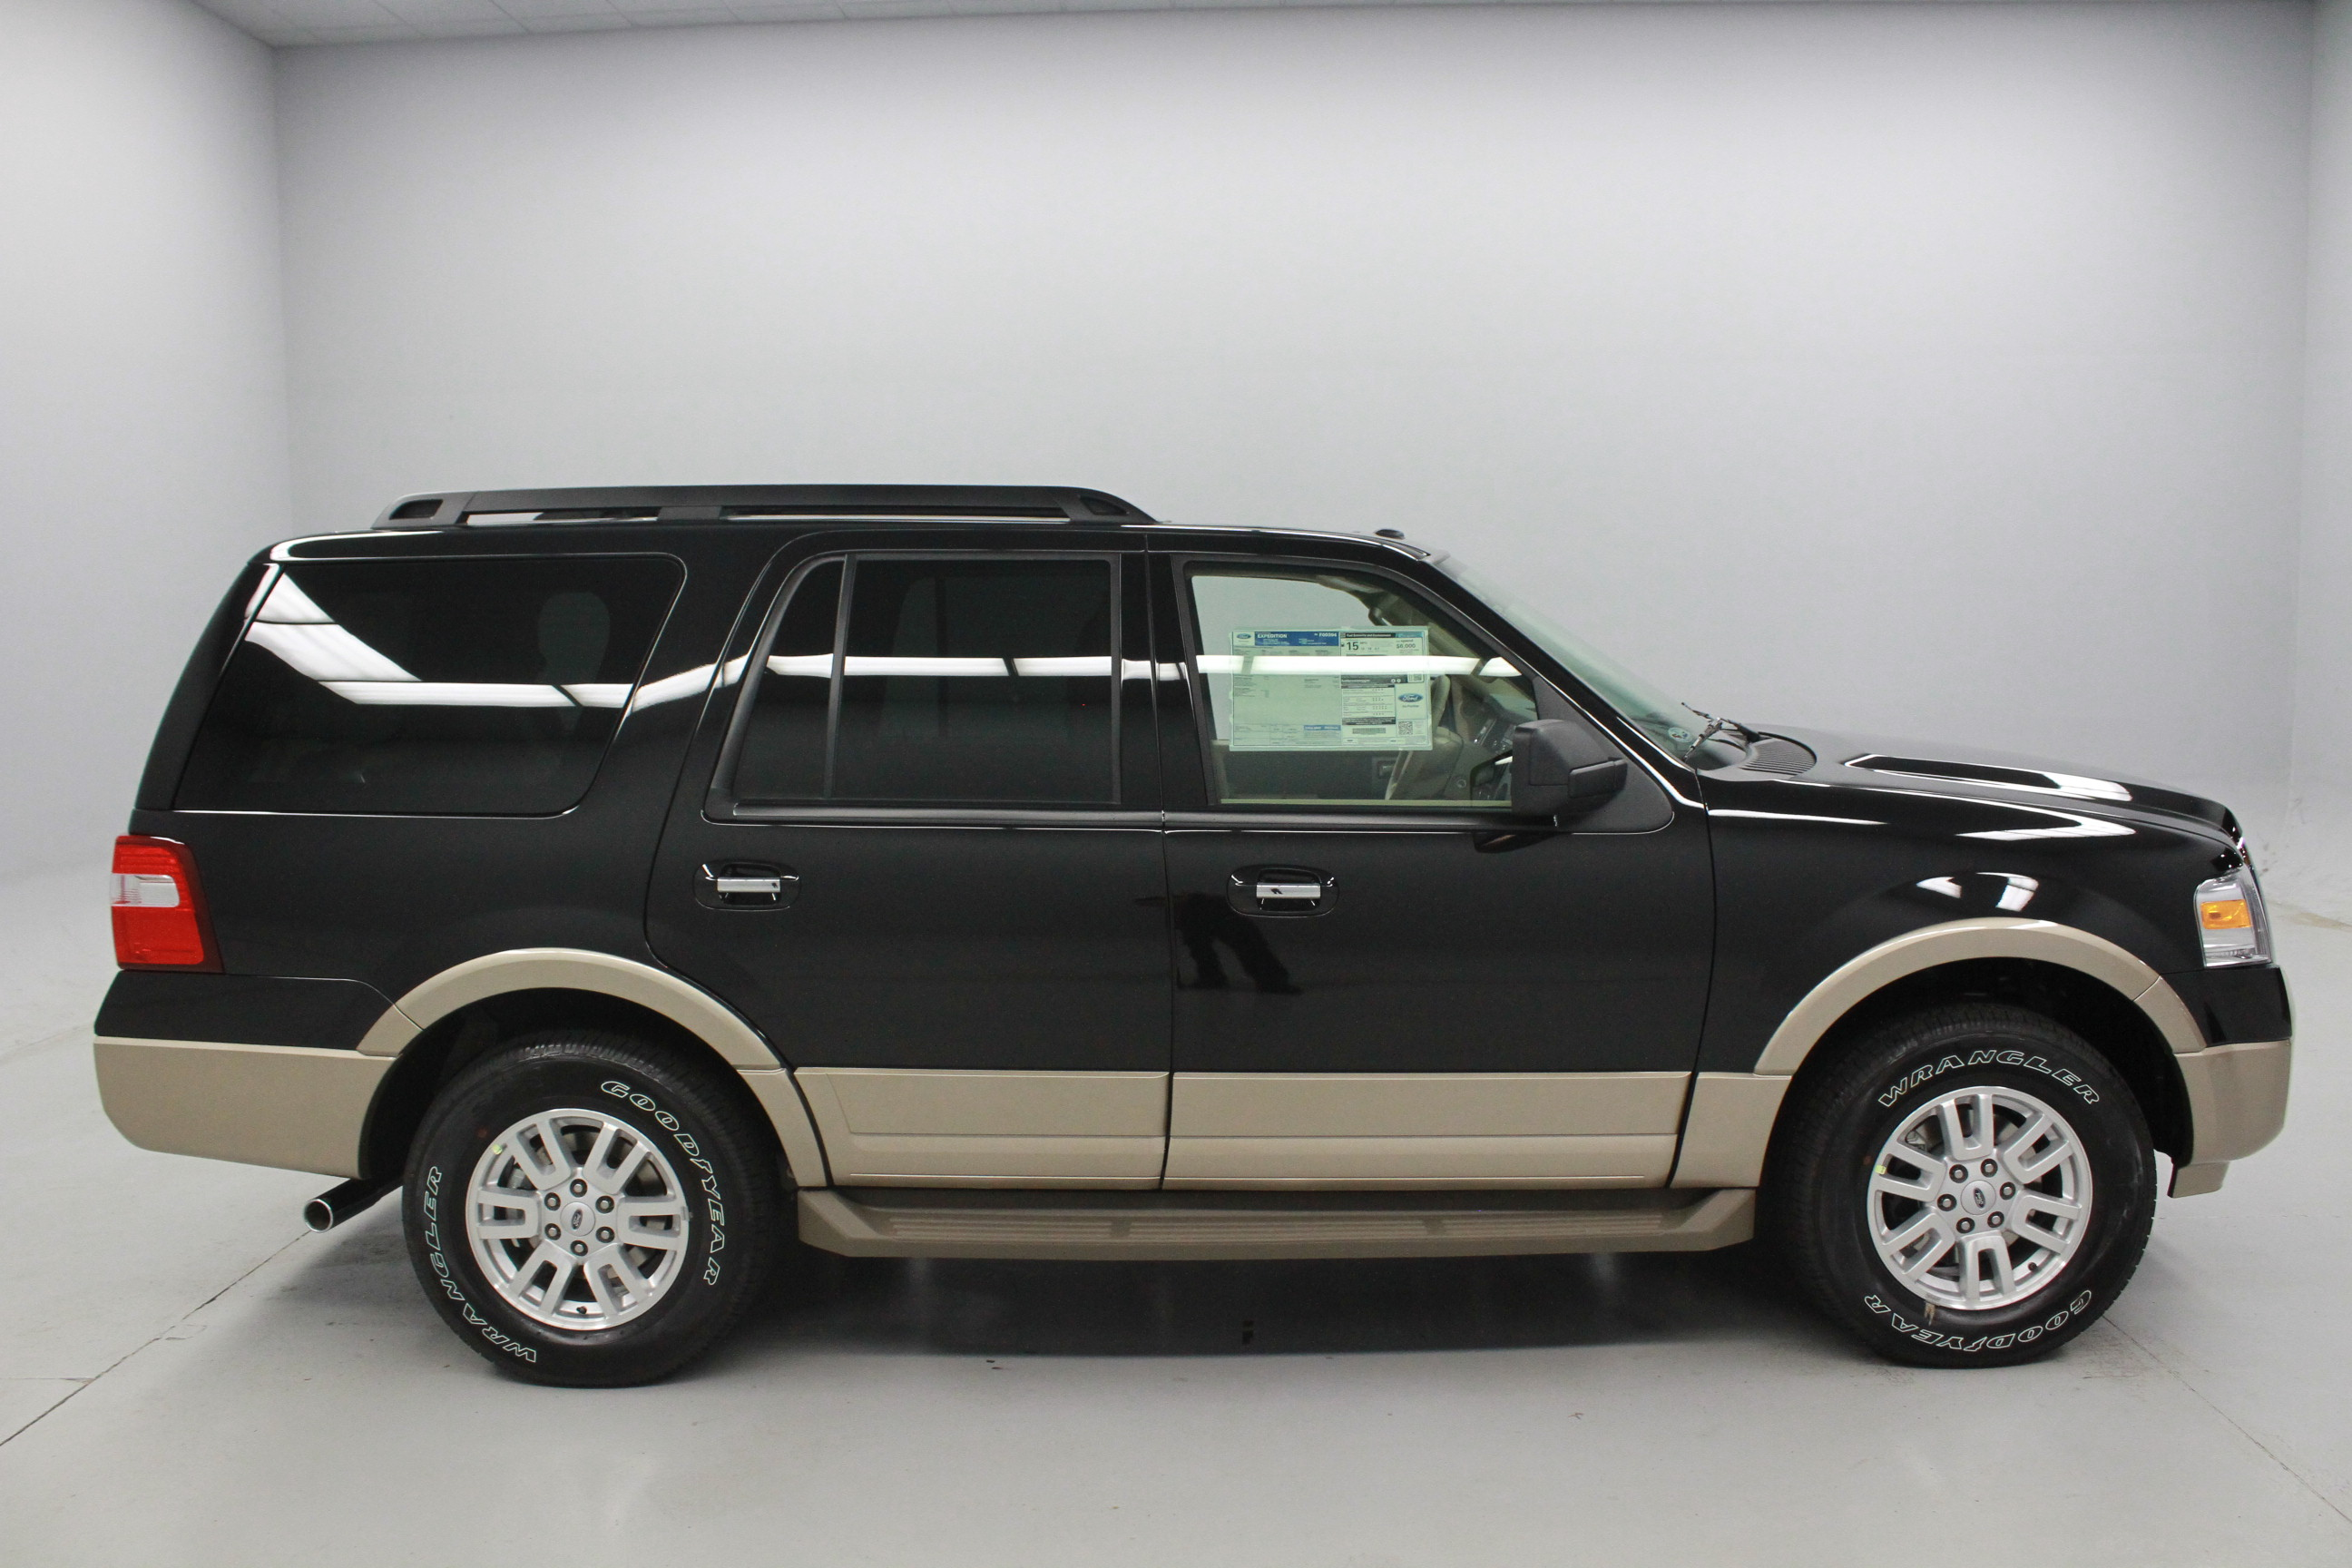 ford expedition 2014 review amazing pictures and images look at the car. Black Bedroom Furniture Sets. Home Design Ideas